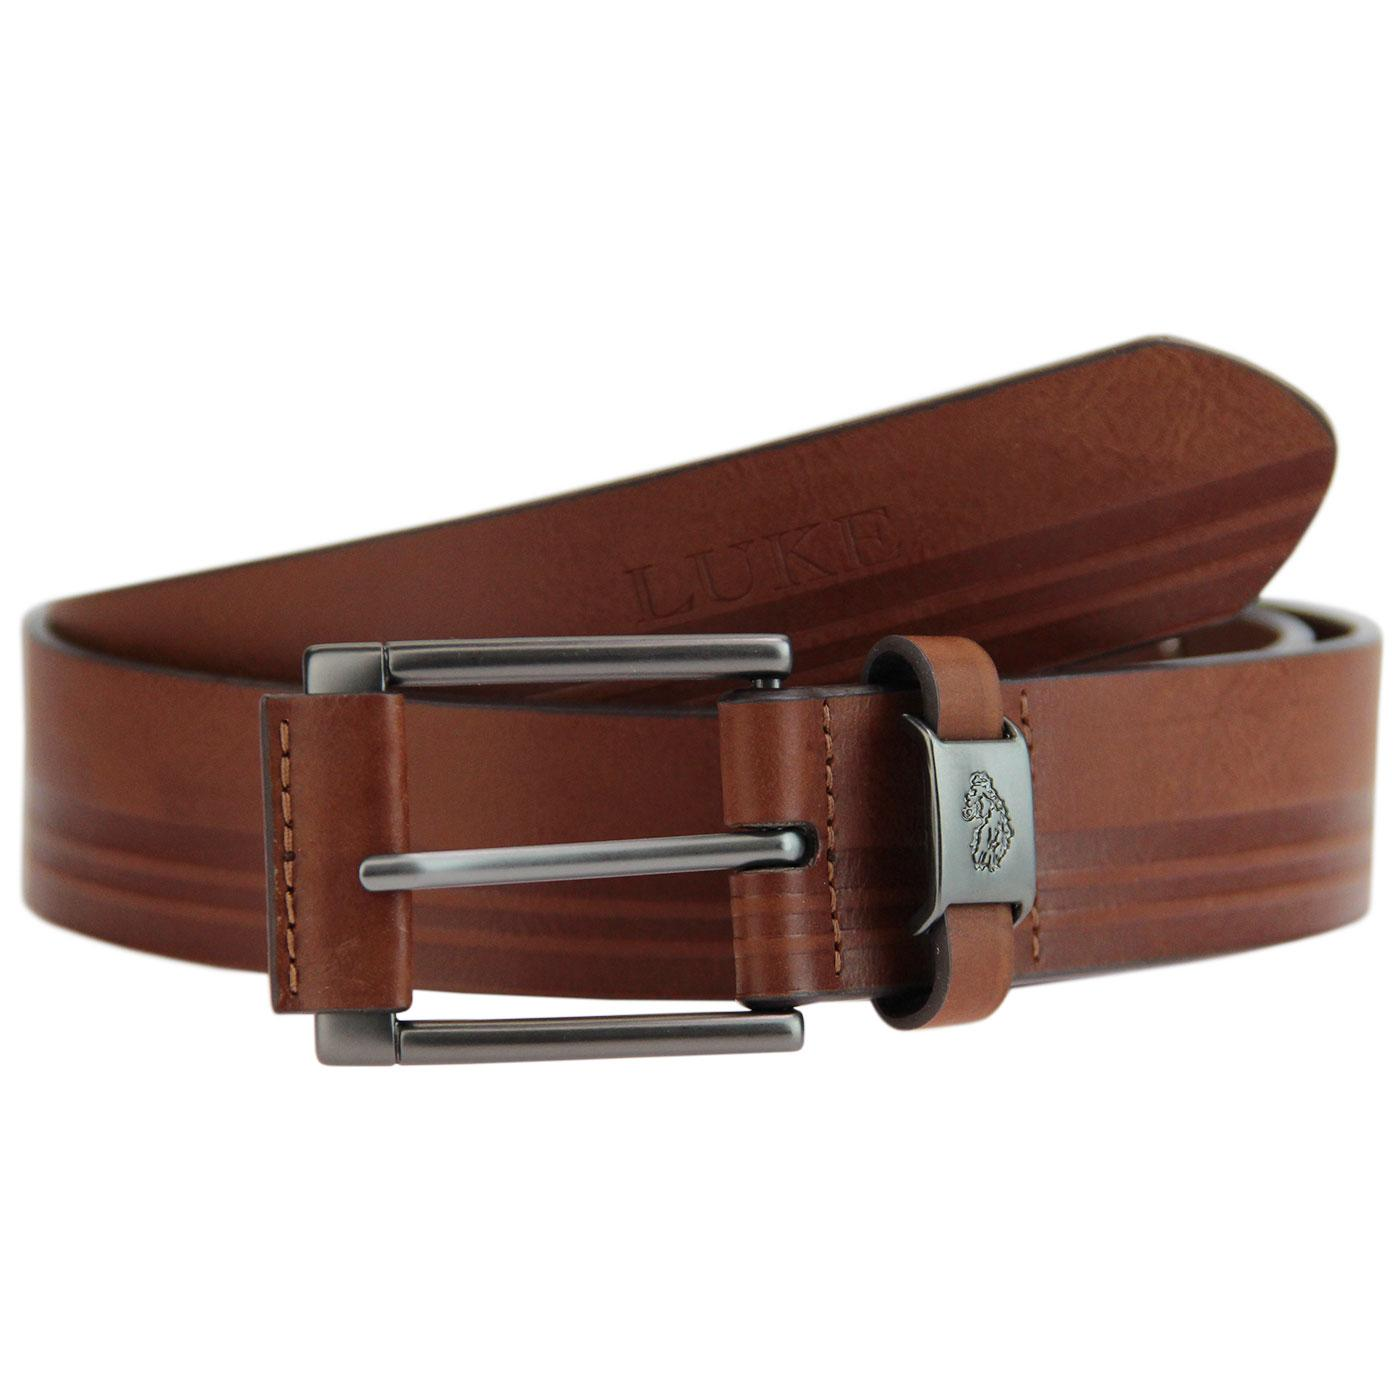 Staple LUKE Retro Tonal Embossed Stripe Belt BROWN